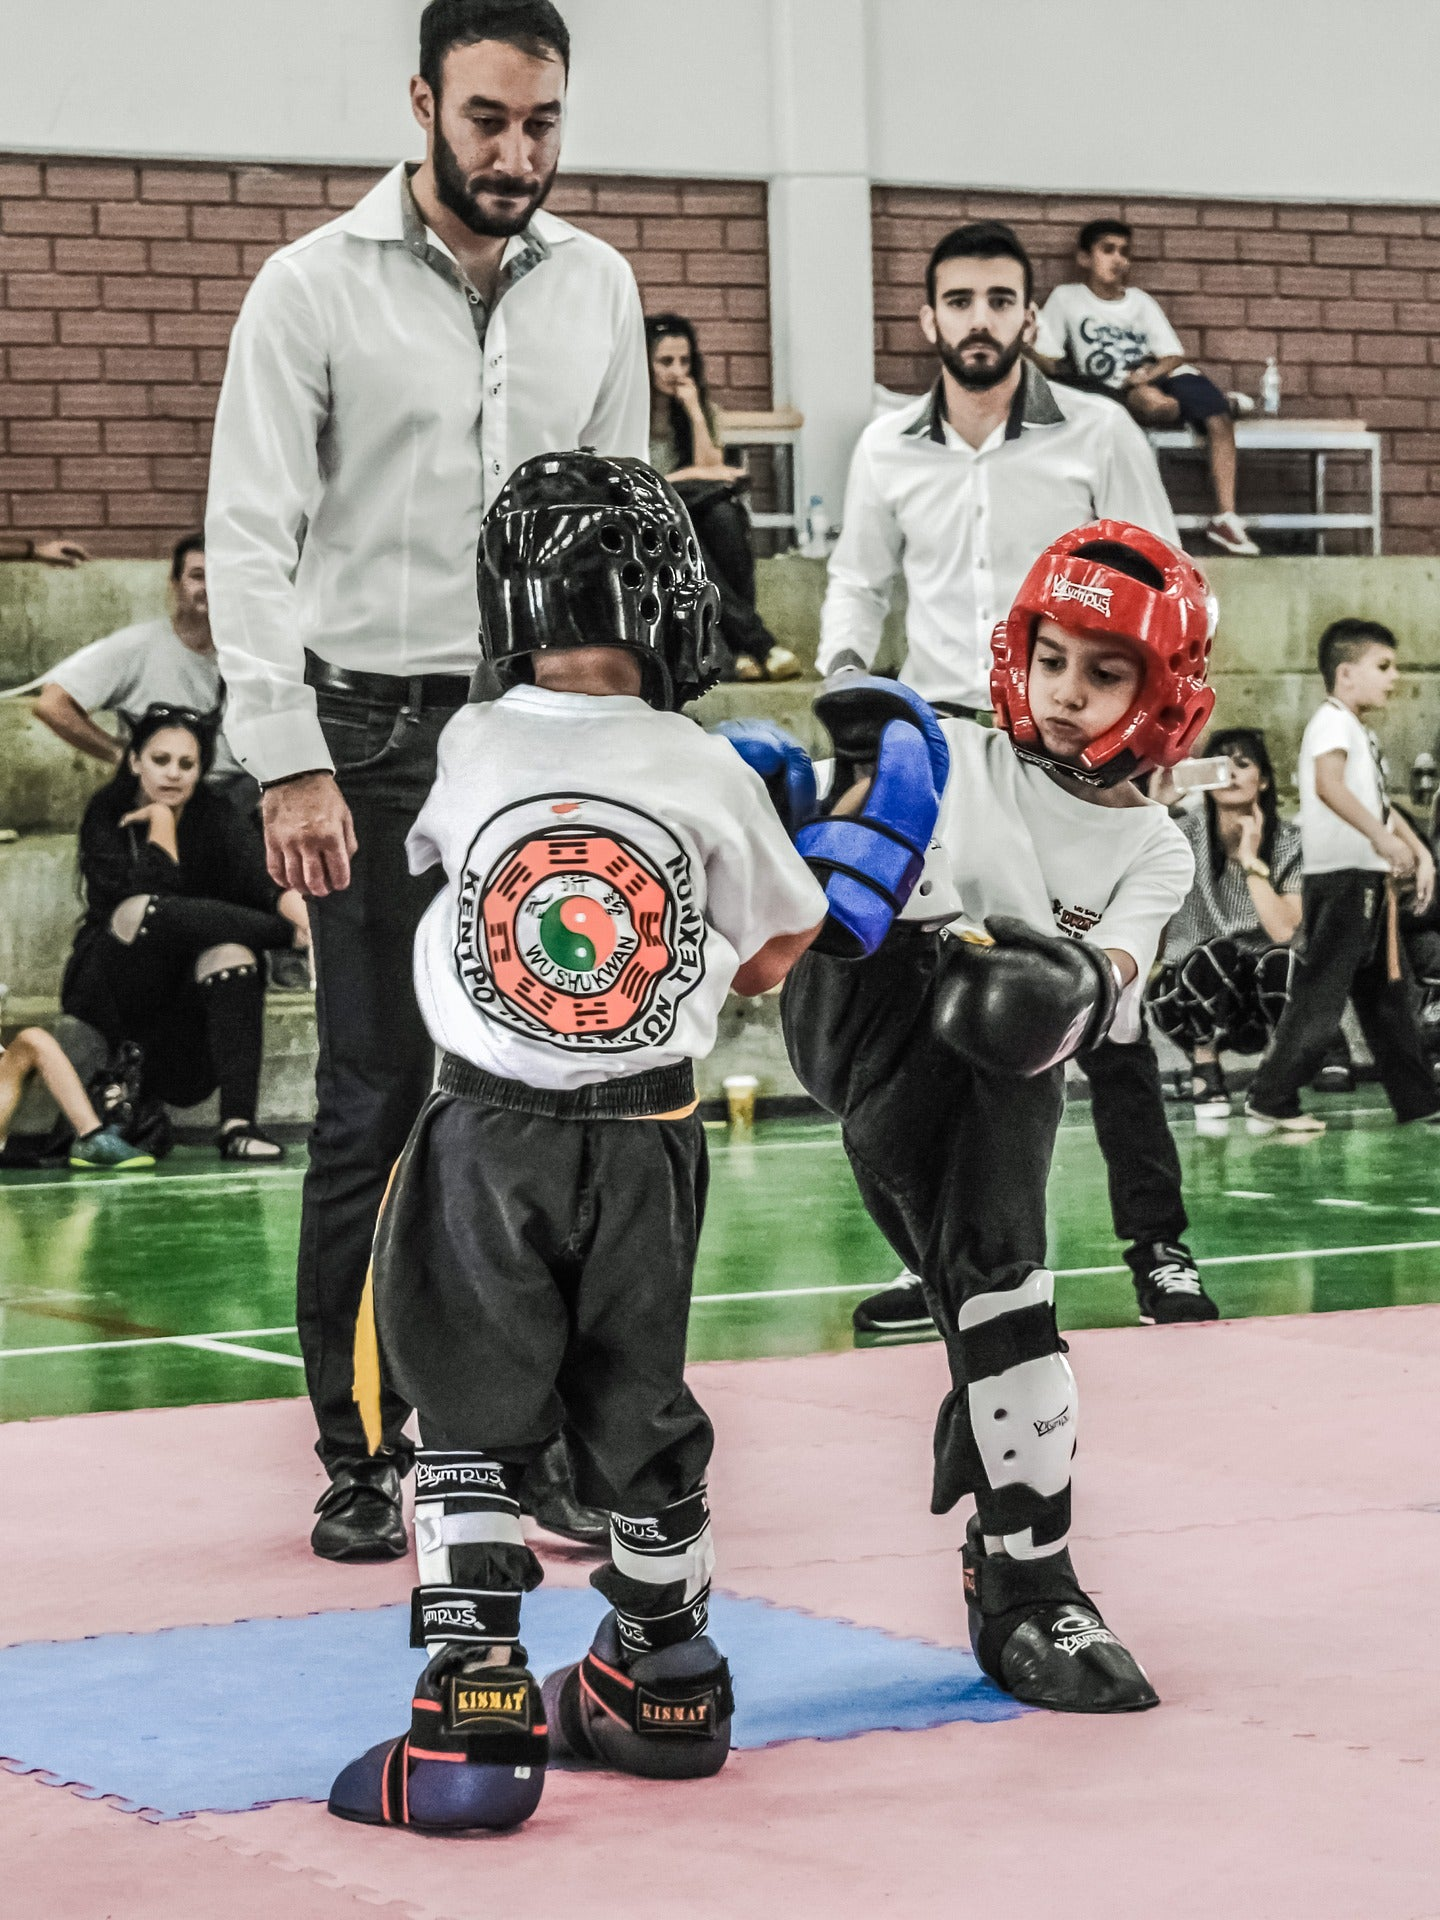 Boys Comfortable Protective Cup for Karate Keeps Son Safe